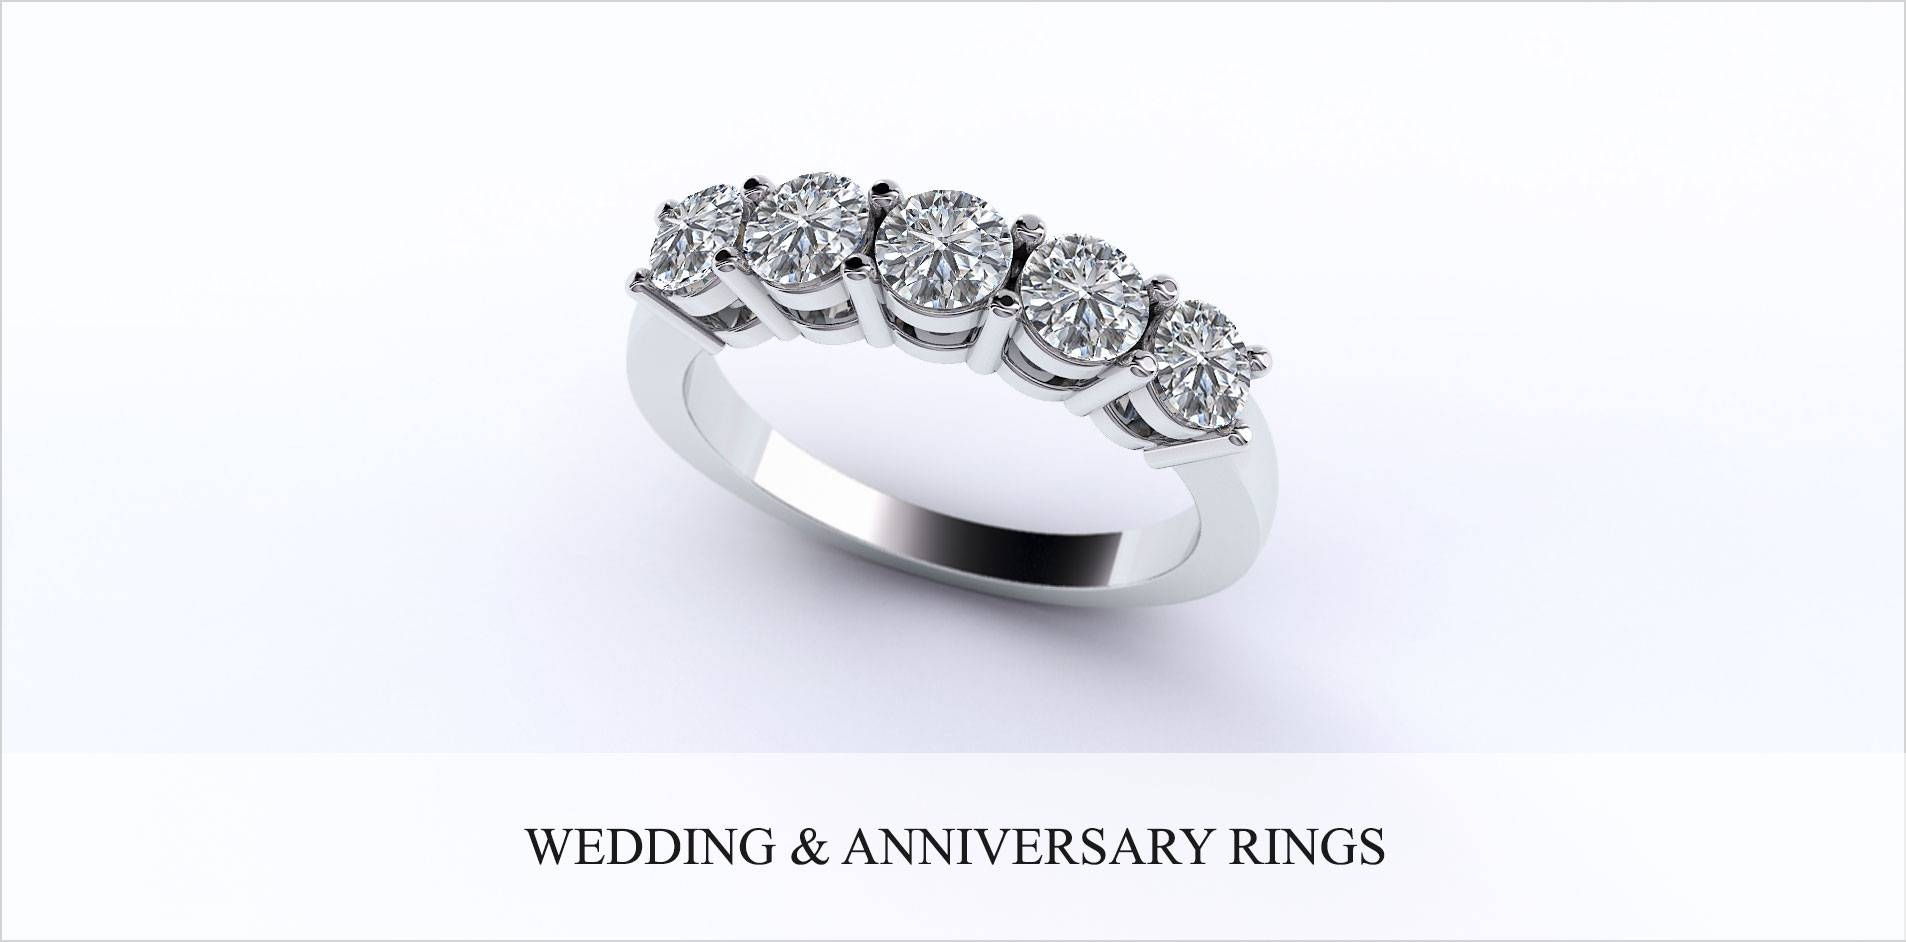 past new rings size wedding ring shop present diamond white engagement halo future gold round